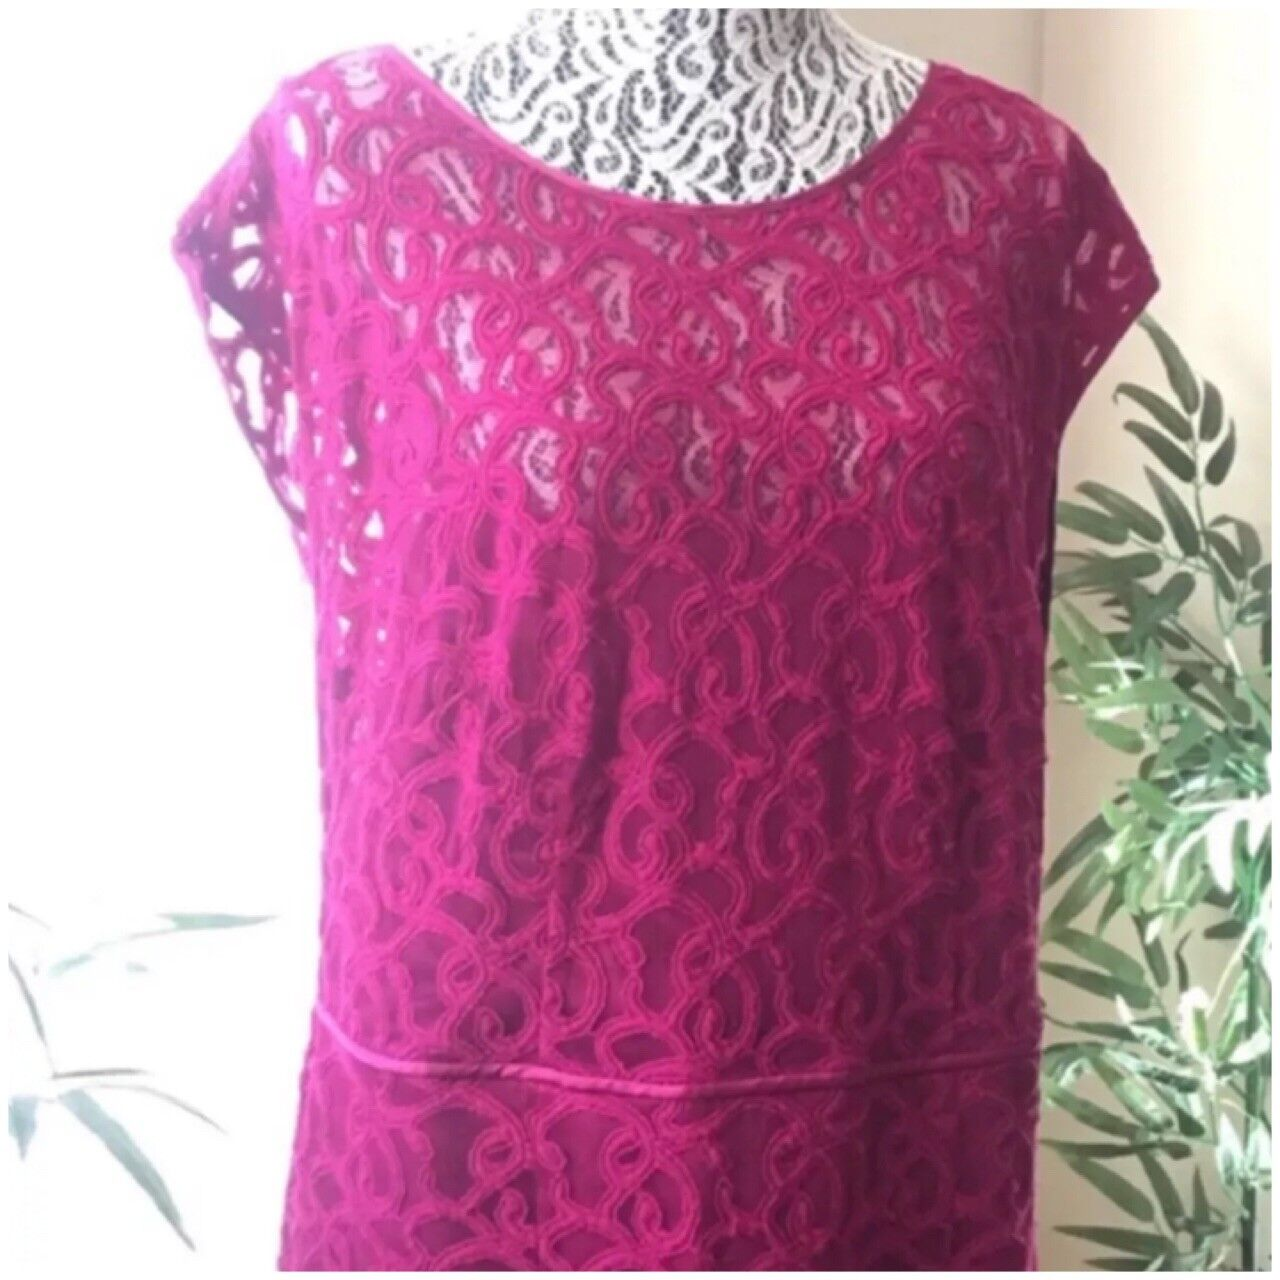 ADRIANNA PAPELL Woman Magenta Size 14W Lace Women's Plus Size Dress Pre-Owned